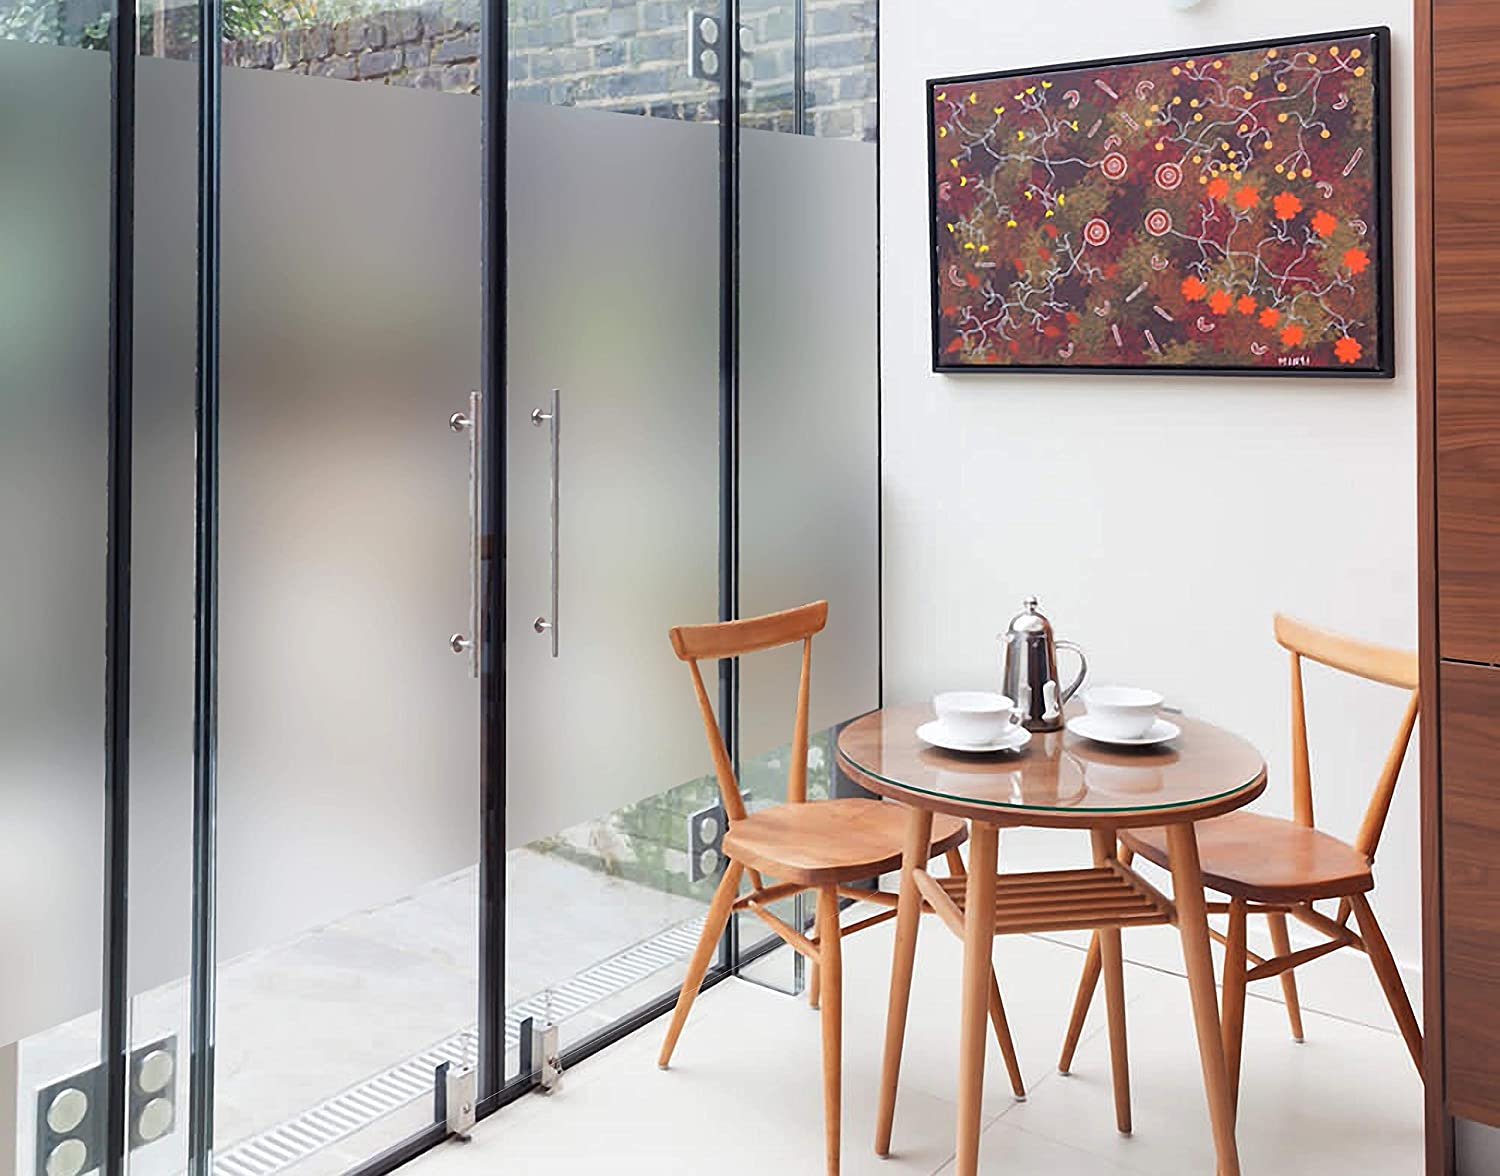 Buy walldesign frosted window self adhesive privacy glass film for glass cabinet glass partition sliding window 18 x 72 inch online at low prices in india